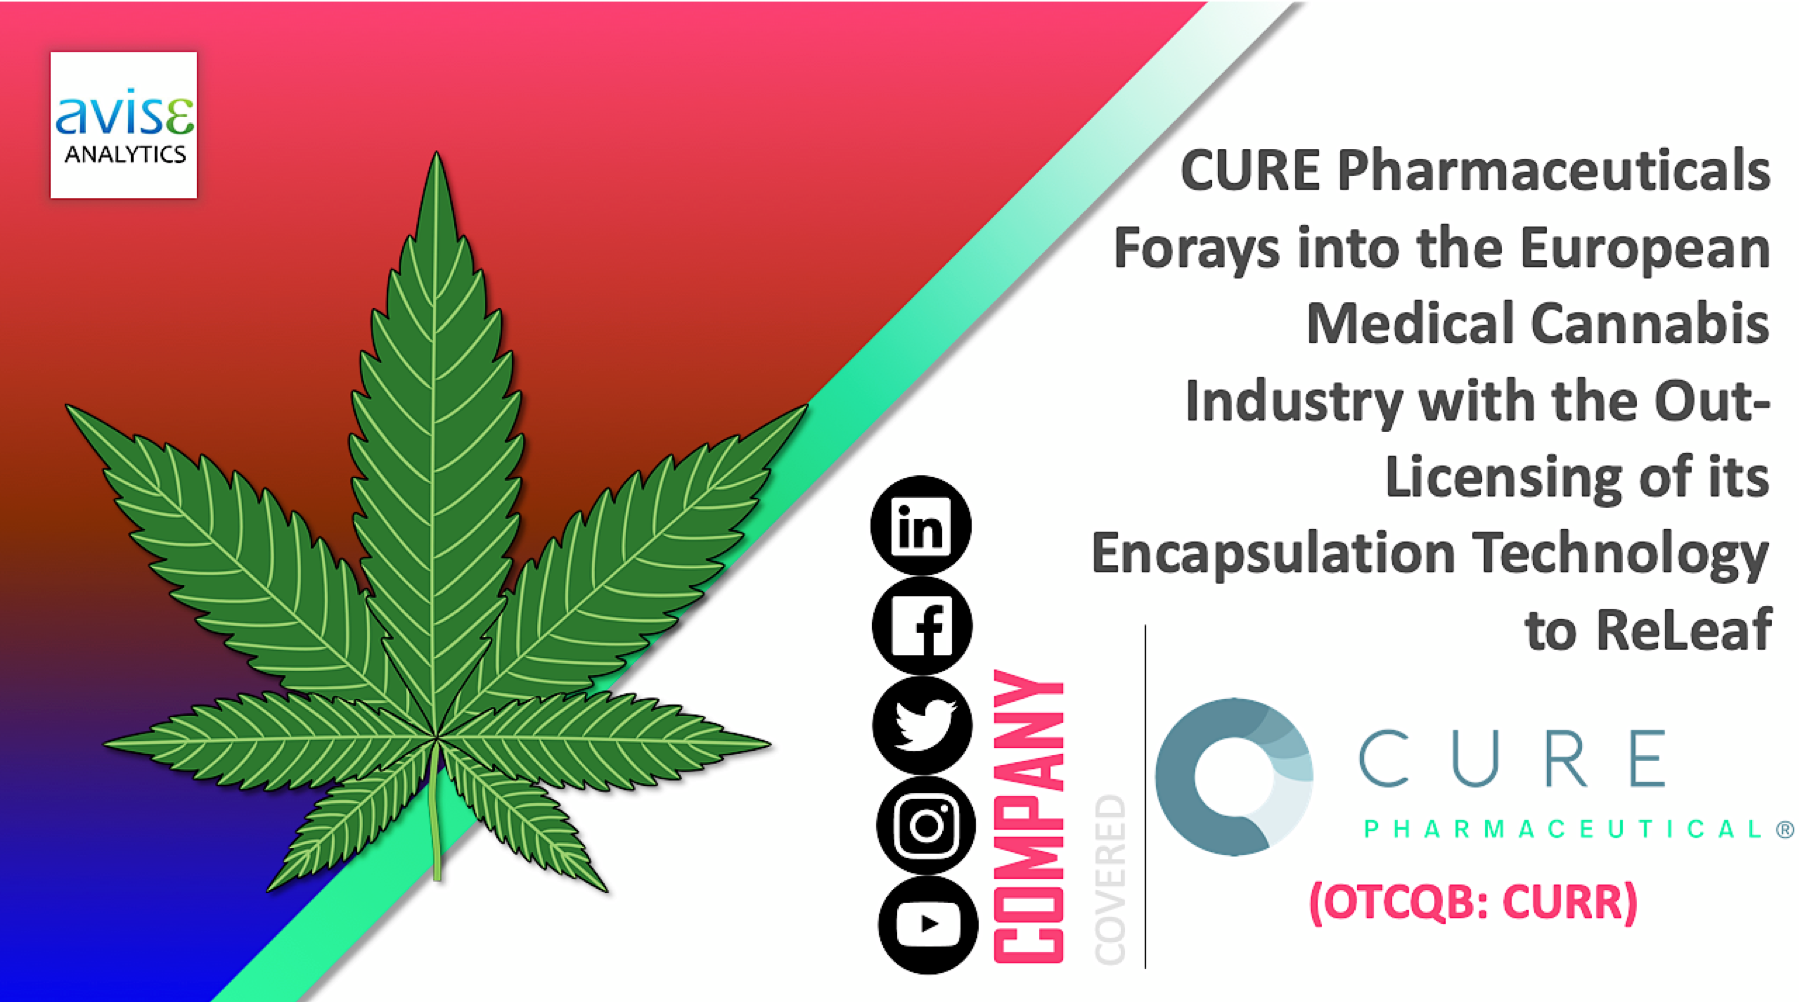 Cure Pharmaceuticals, Inc. CURR is a new Drug Delivery Company